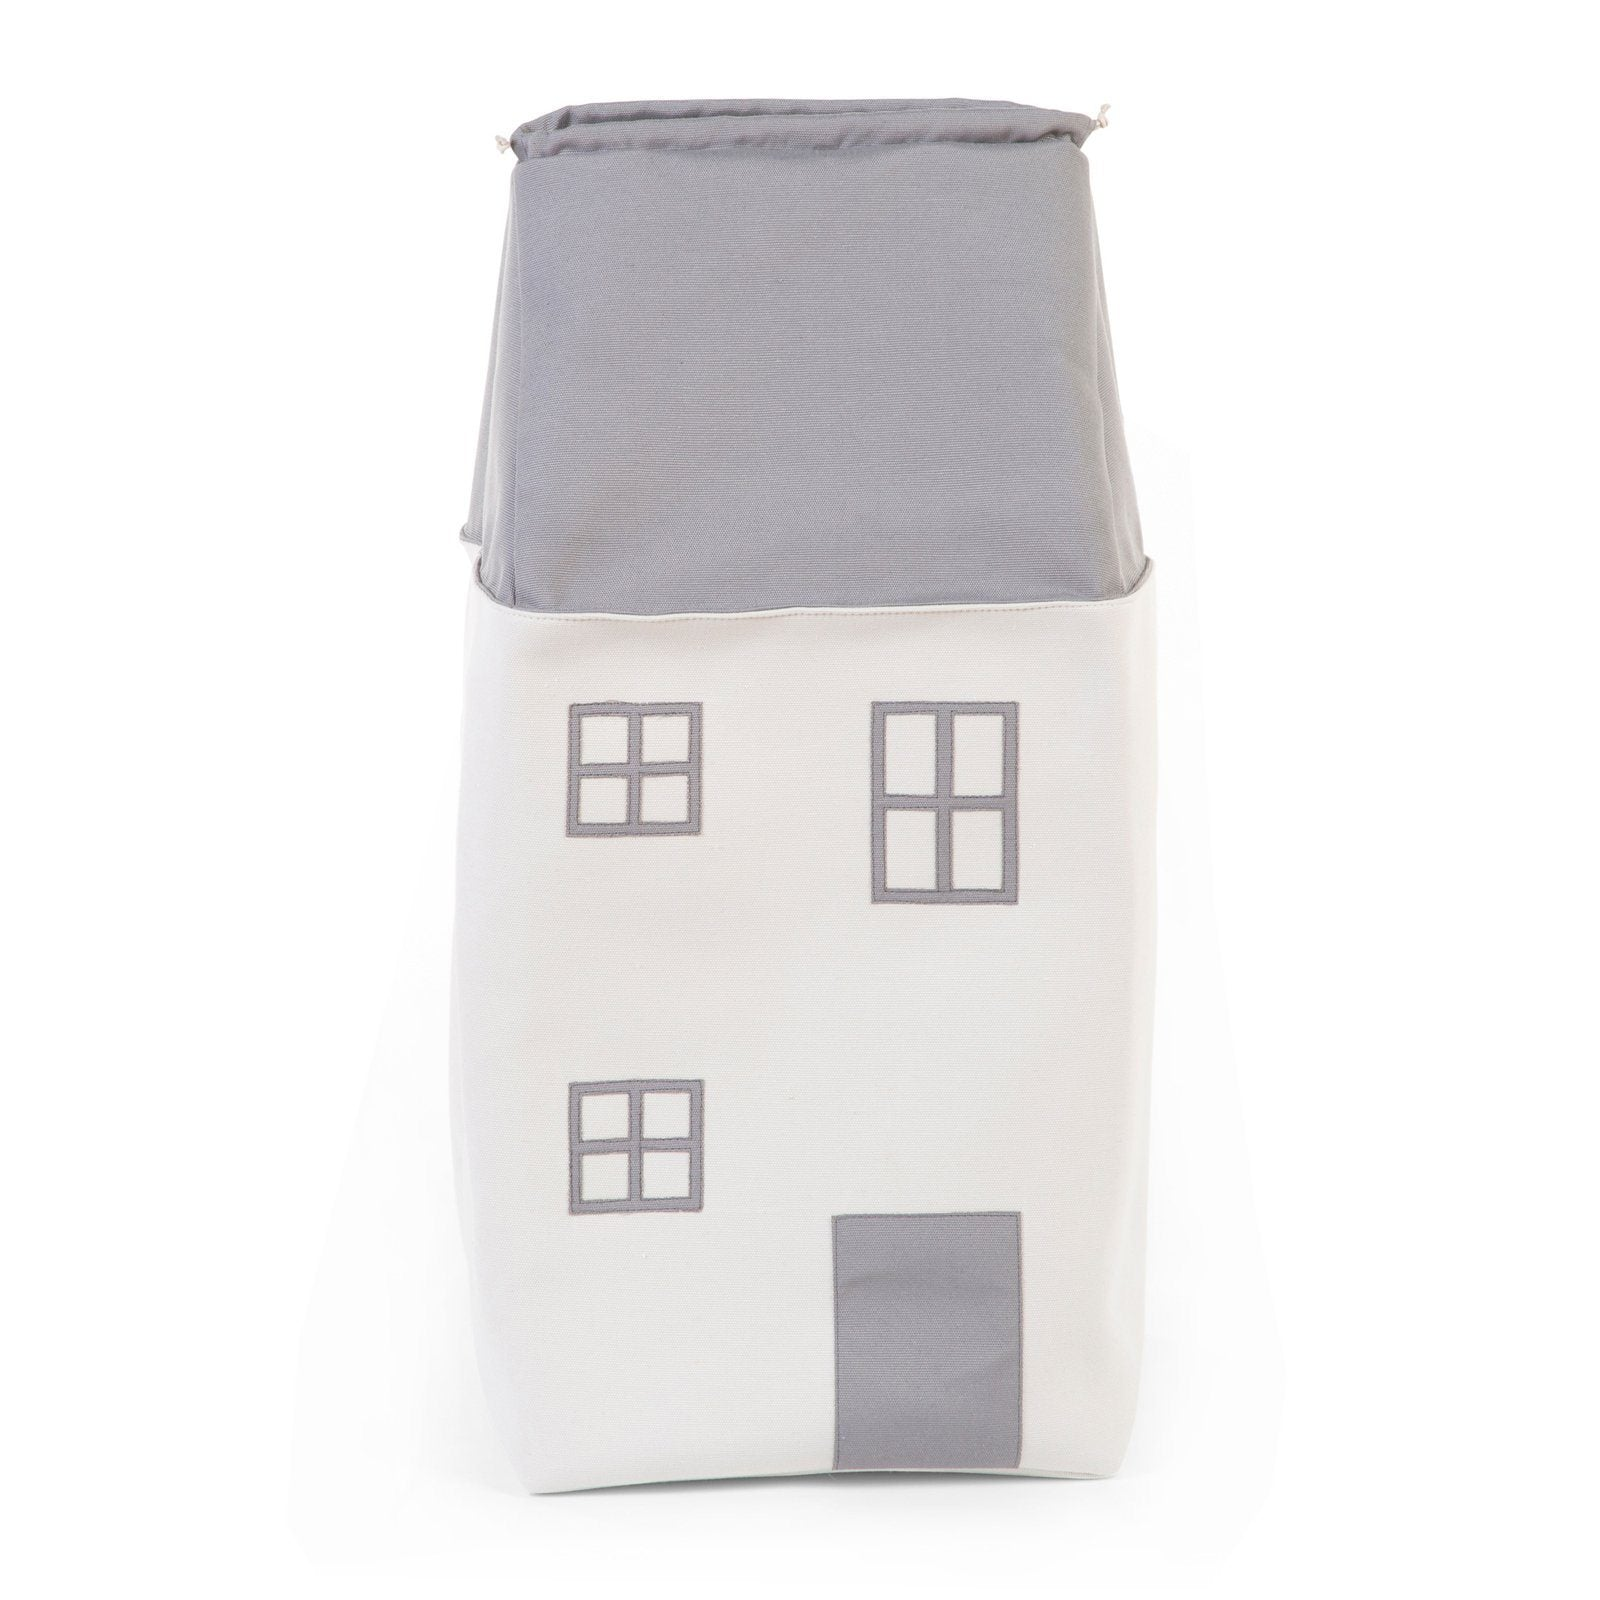 Toy Box House Storage Bag Nursery Decor Childhome